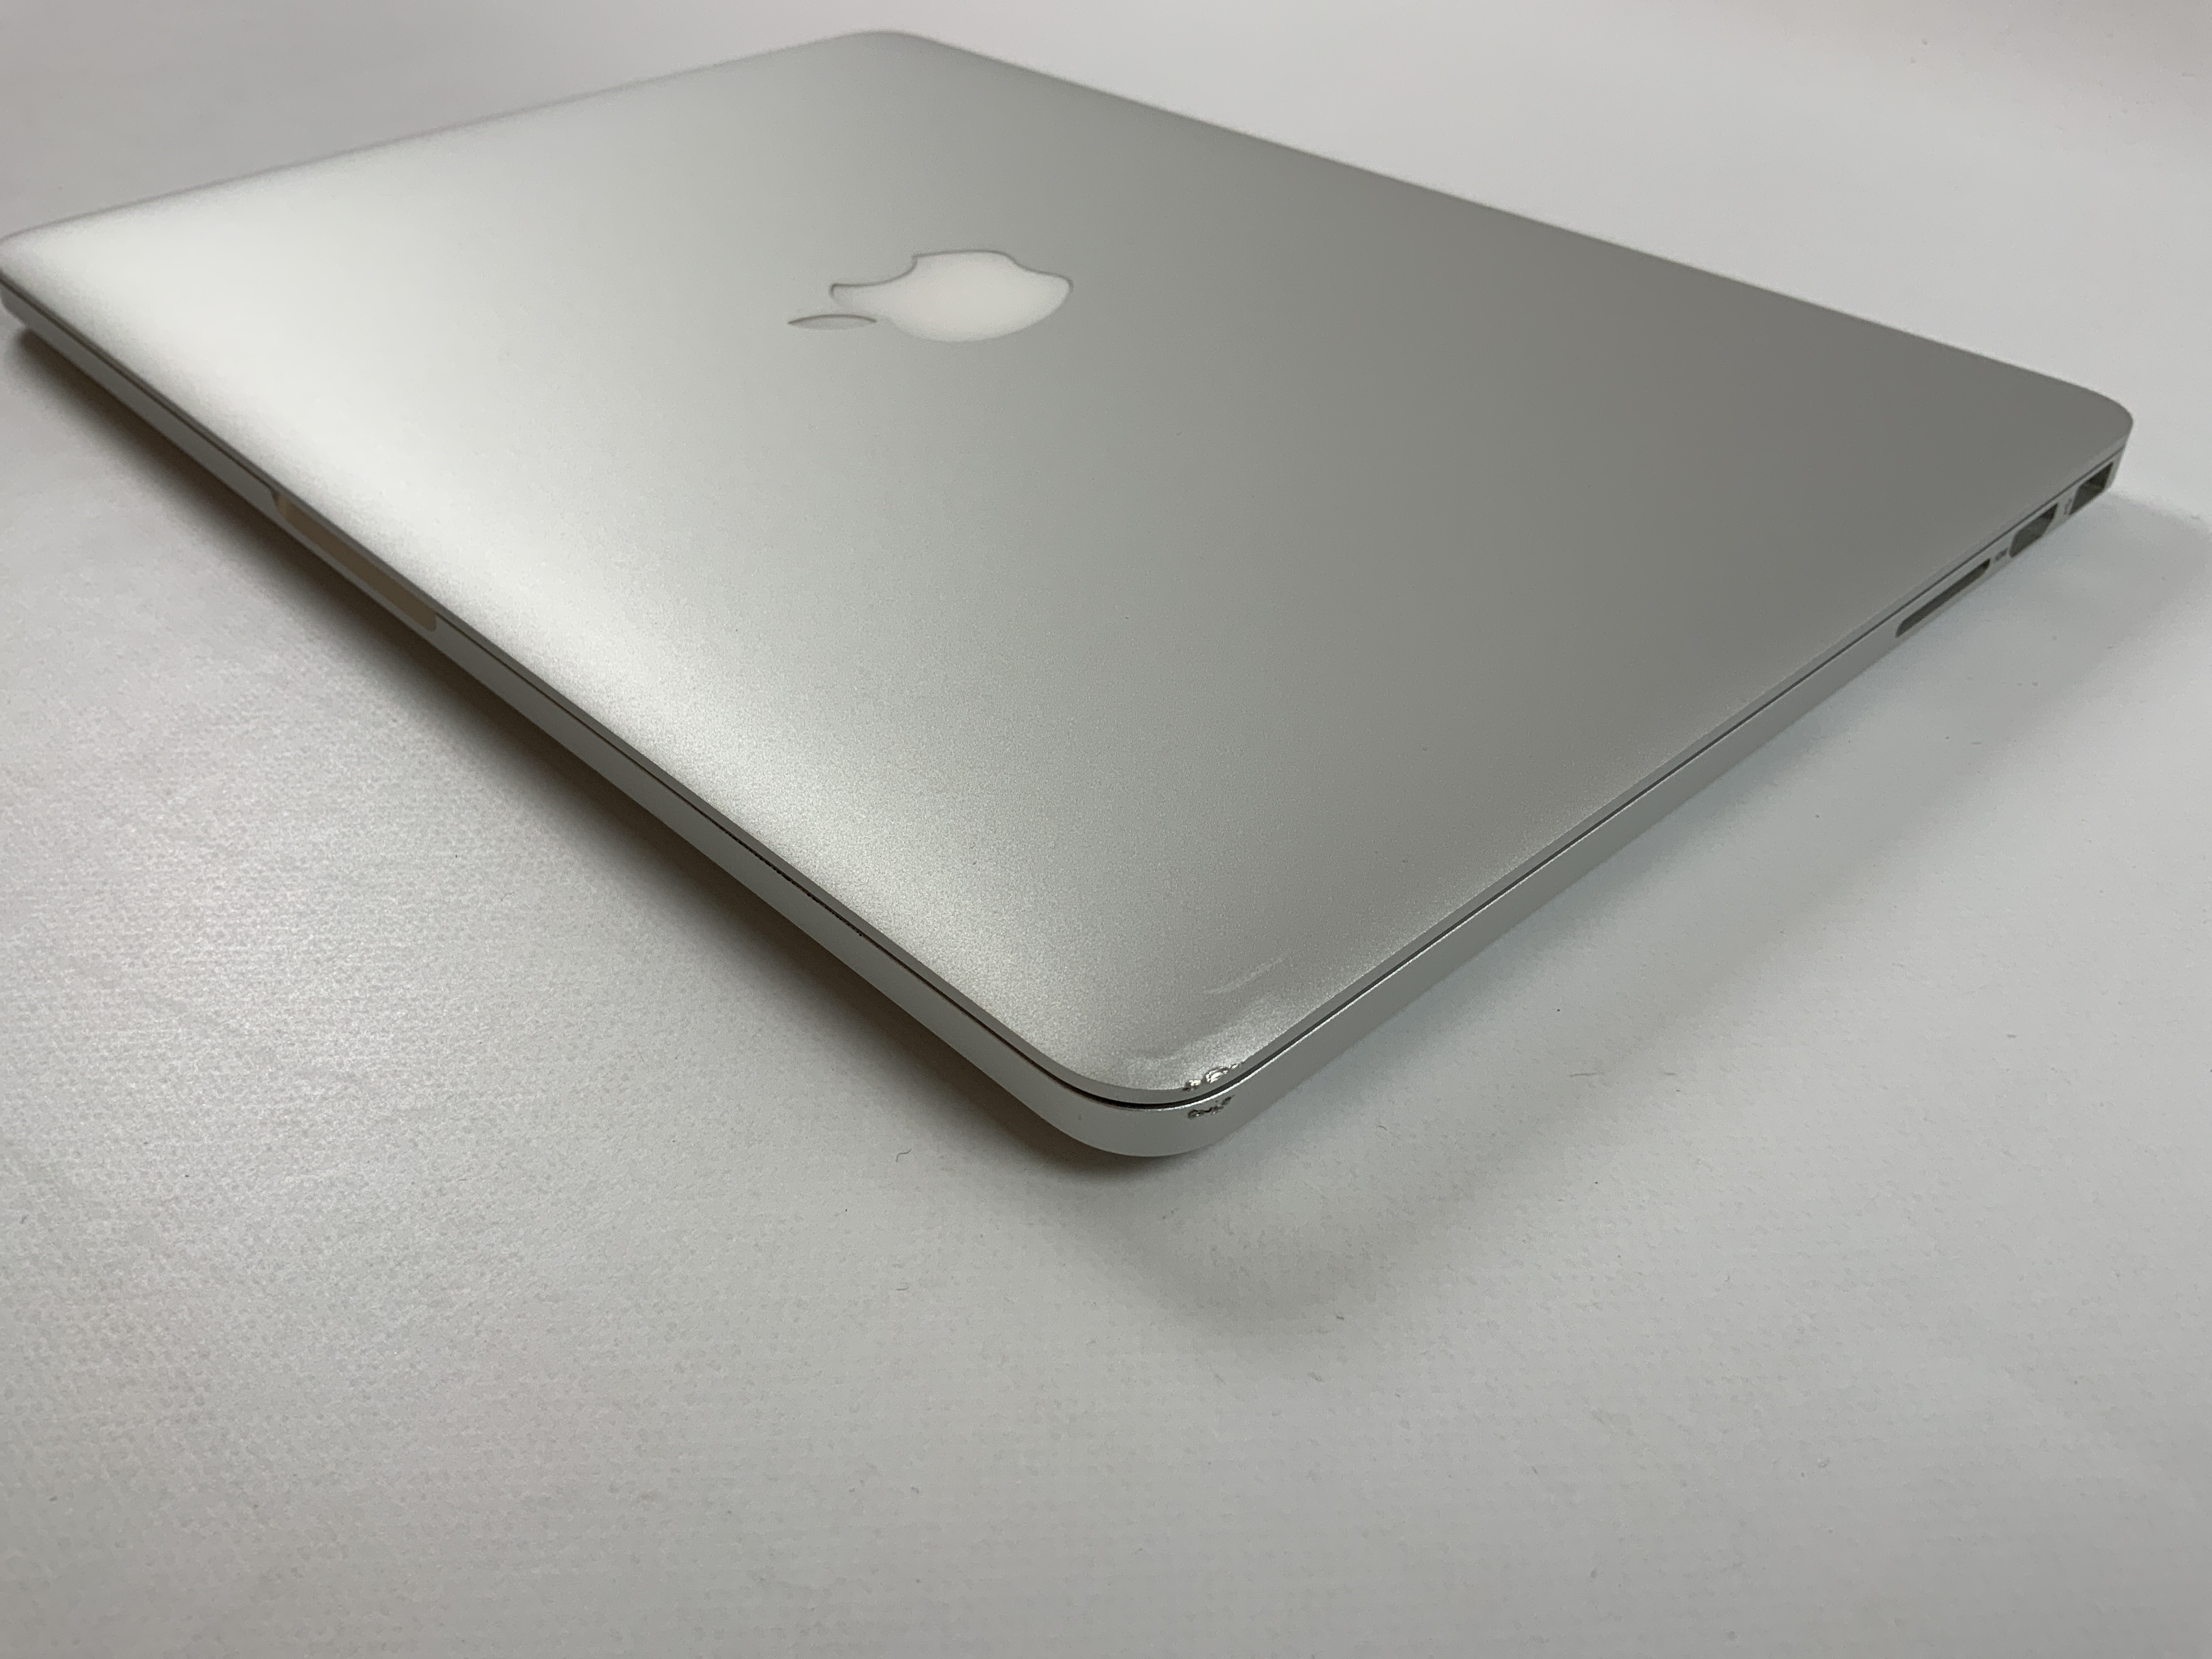 "MacBook Pro Retina 13"" Early 2015 (Intel Core i5 2.7 GHz 8 GB RAM 128 GB SSD), Intel Core i5 2.7 GHz, 8 GB RAM, 128 GB SSD, Kuva 4"